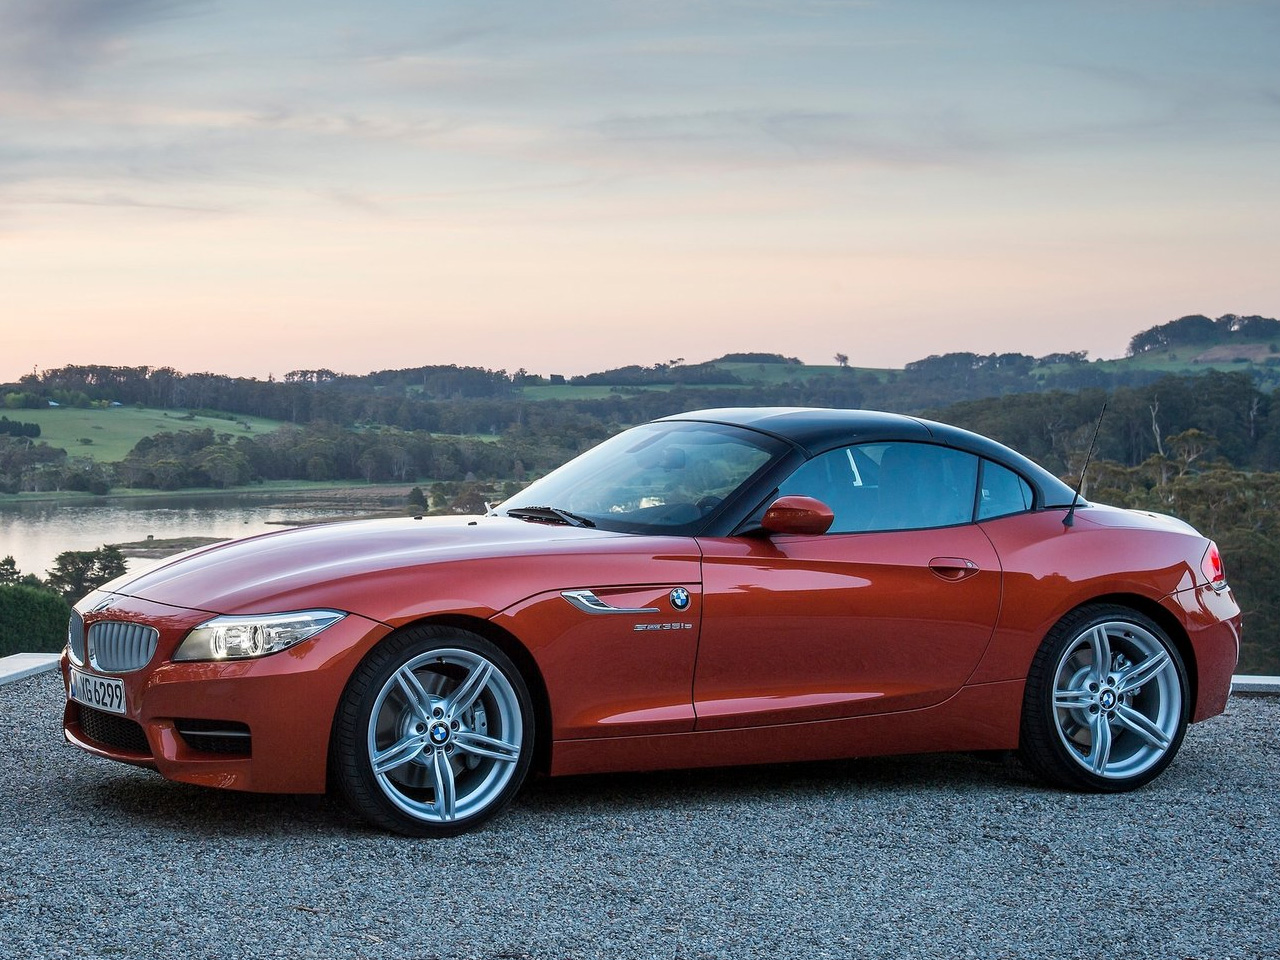 2014 Bmw Z4 Information And Photos Zombiedrive